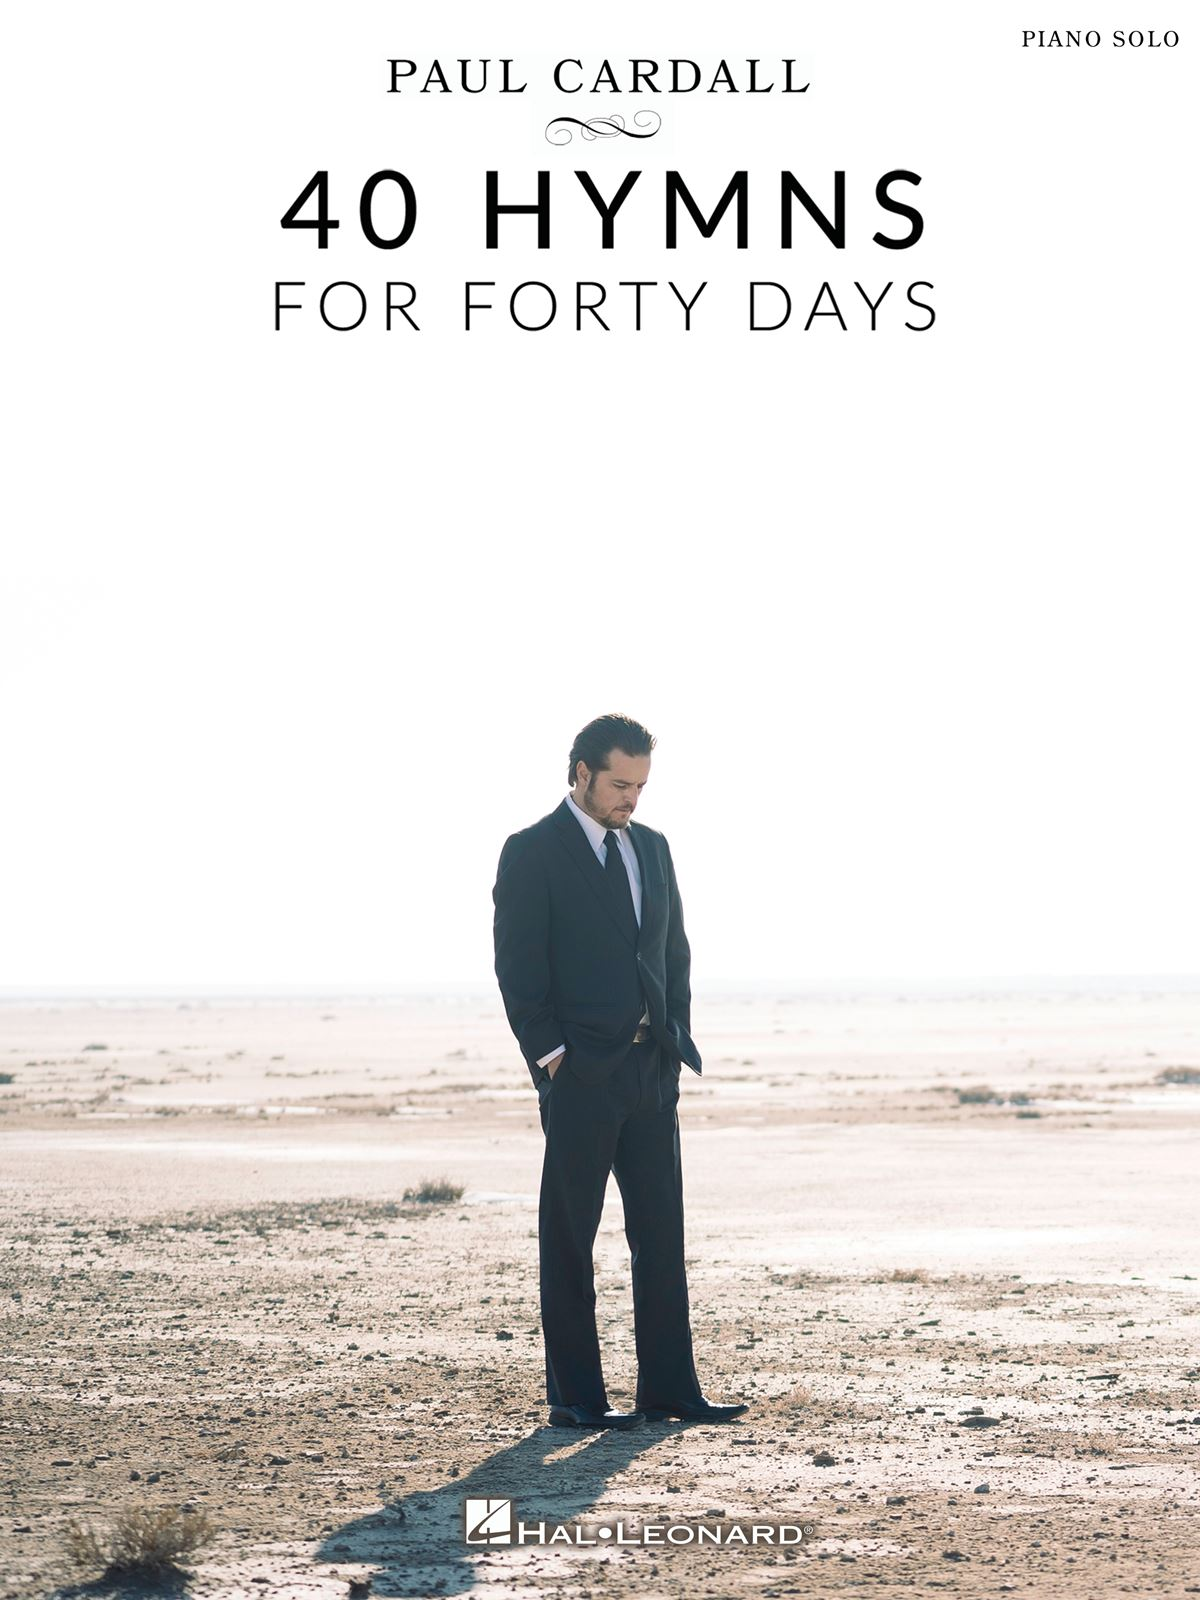 Paul Cardall: Paul Cardall - 40 Hymns for Forty Days: Piano Solo: Instrumental